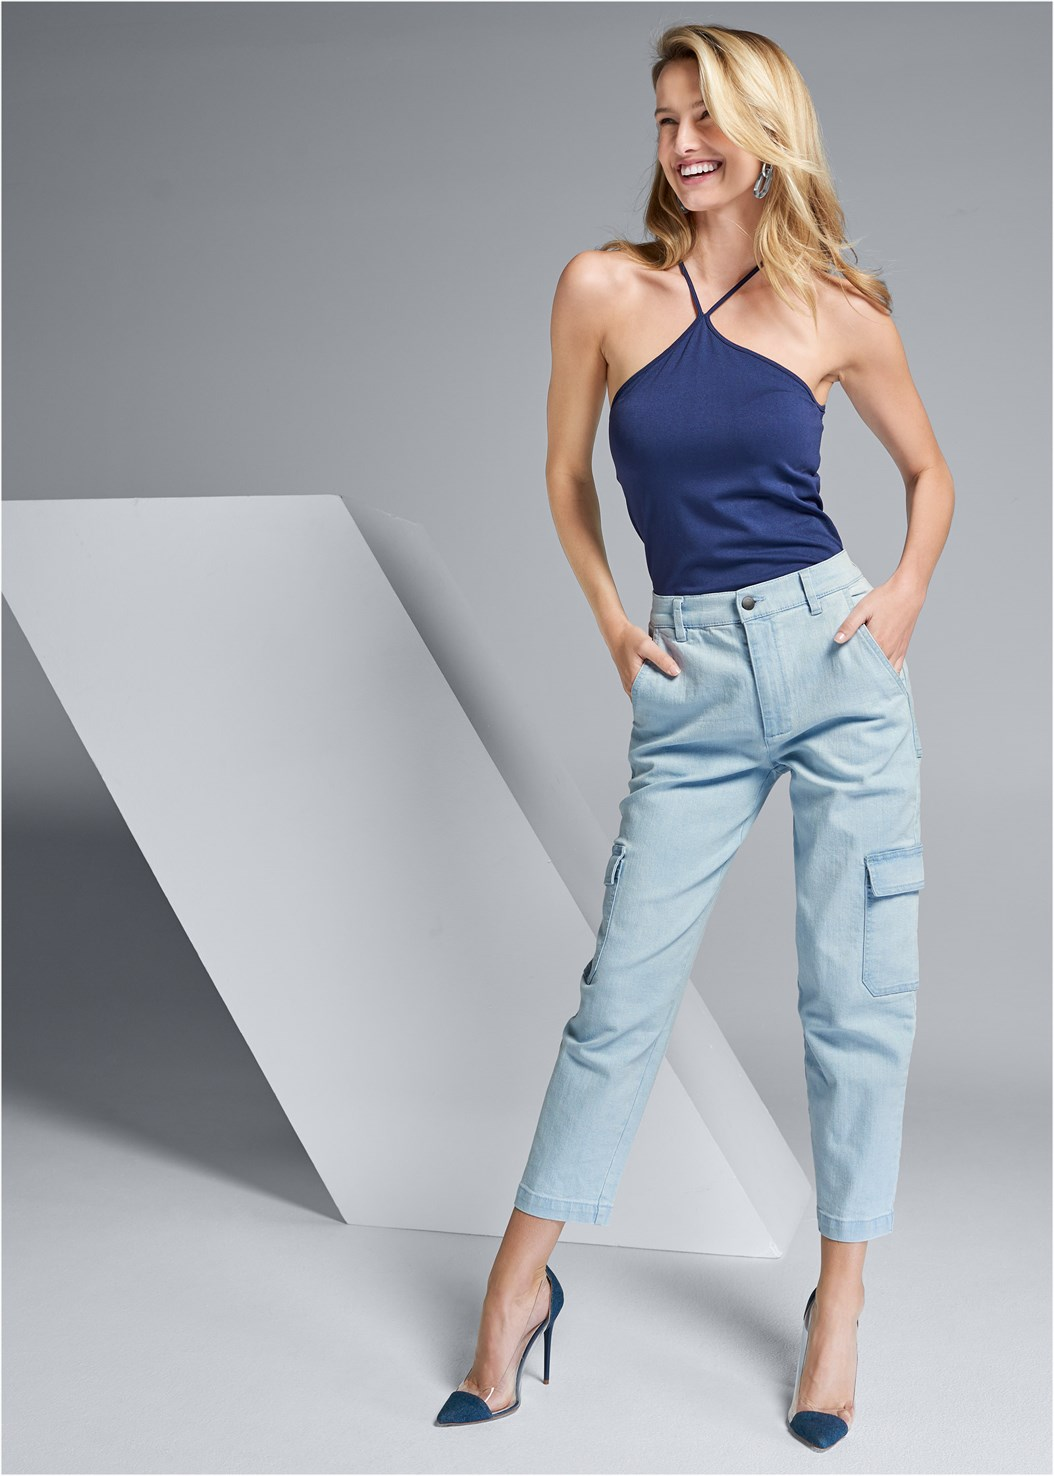 Denim Cargos,Seamless High Neck Top,Lucite Detail Heels